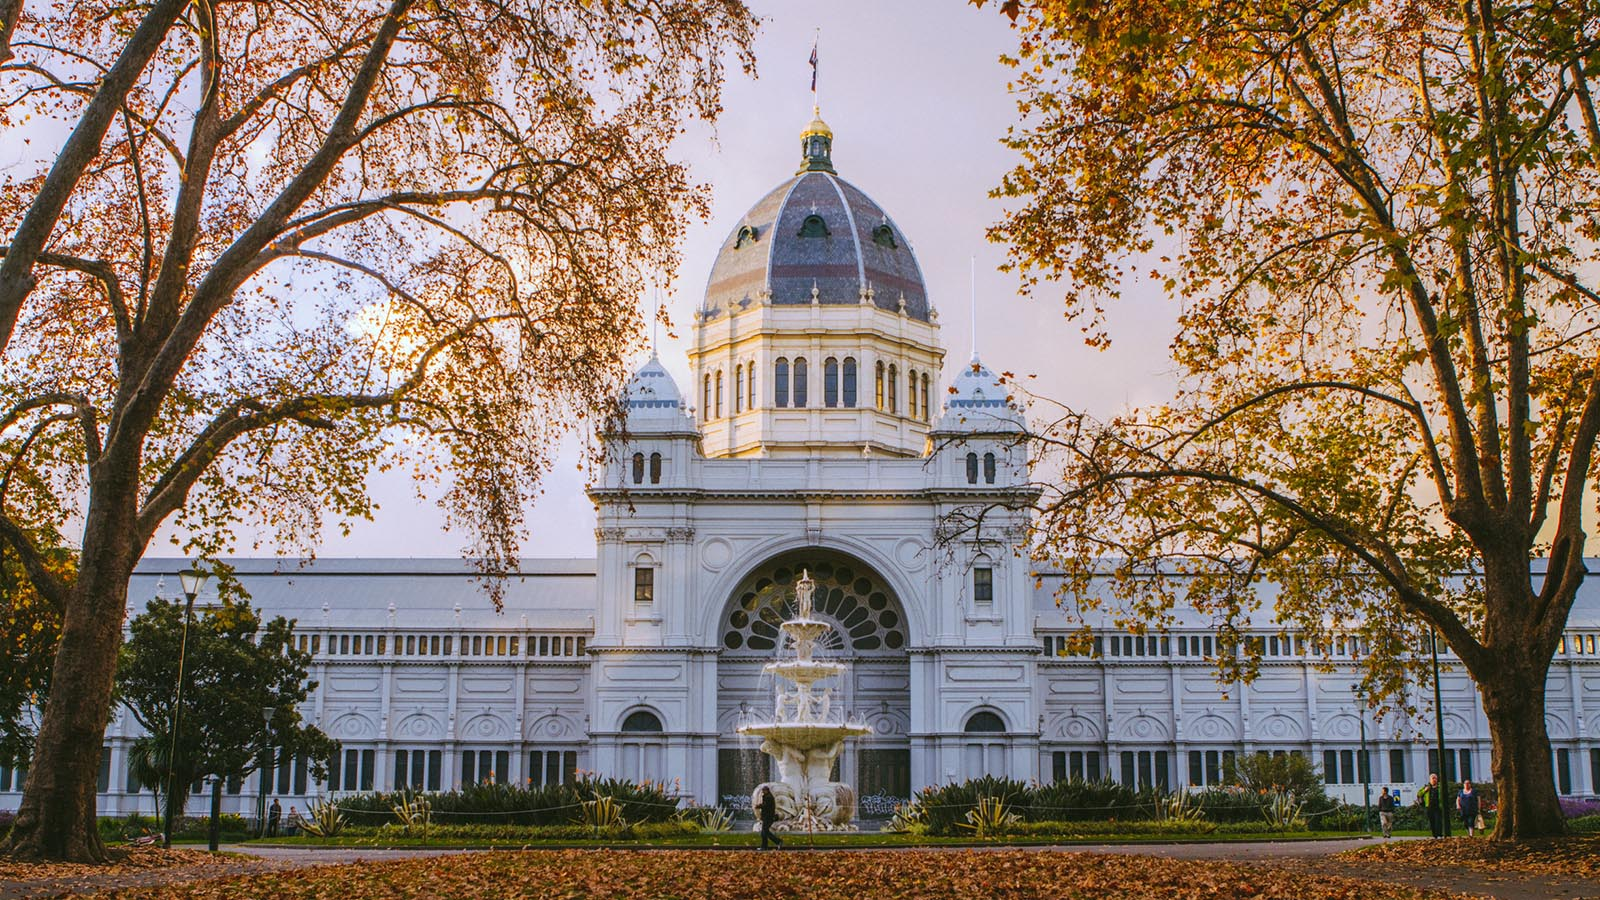 Royal Exhibition Building in autumn, Melbourne, Victoria, Australia. Photo: Robert Seba